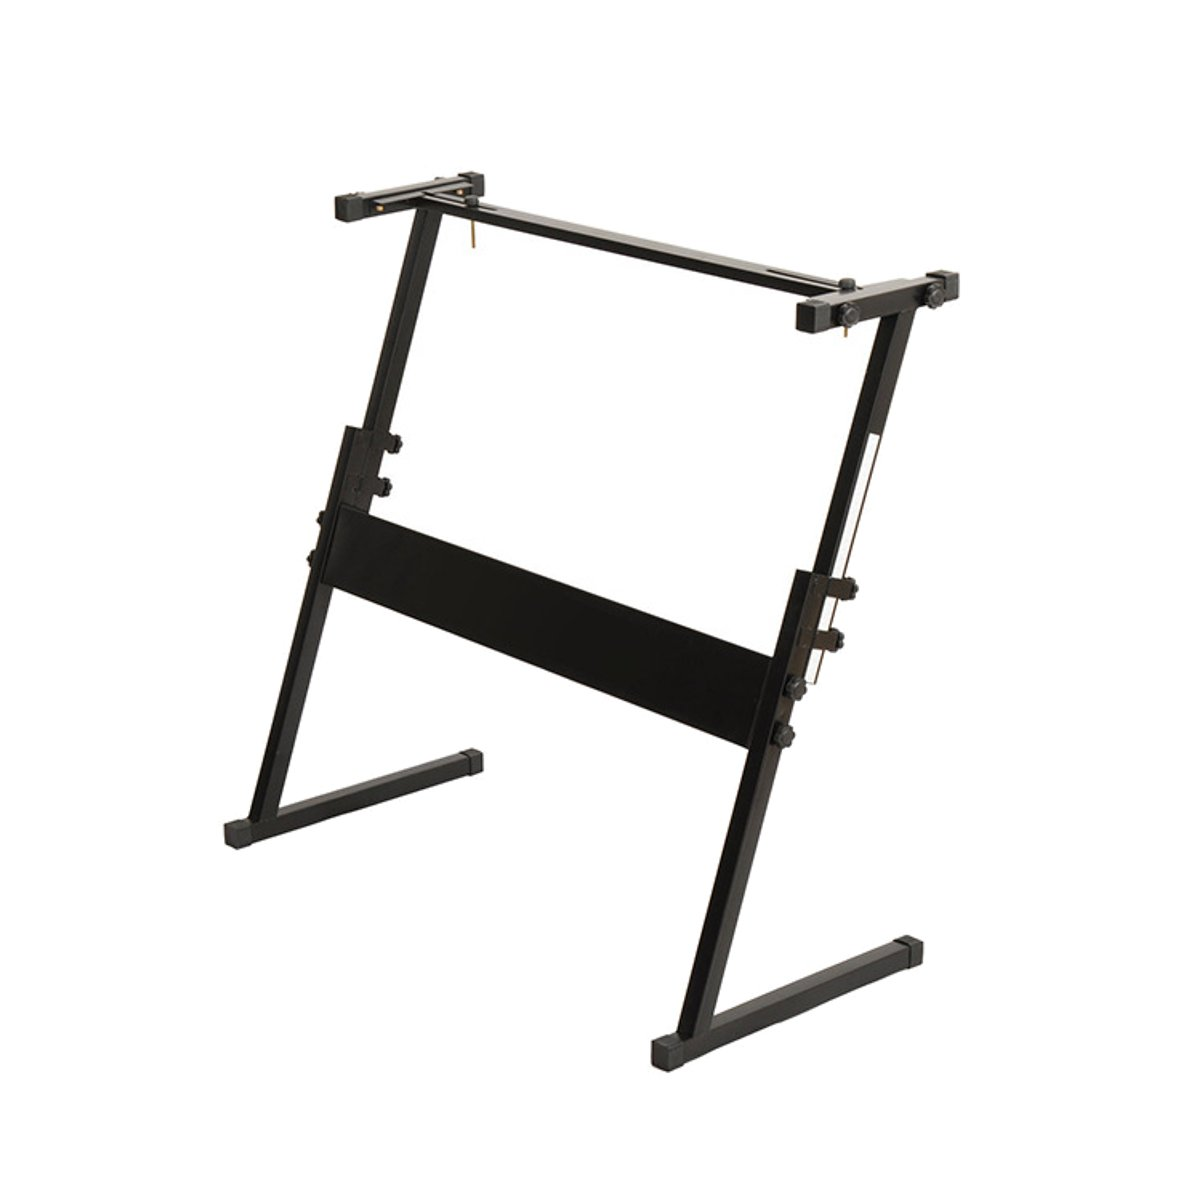 54/61 Keyboard Stand Z Frame Portable Heavy Duty Piano Keyboard Stand Height Adjustable